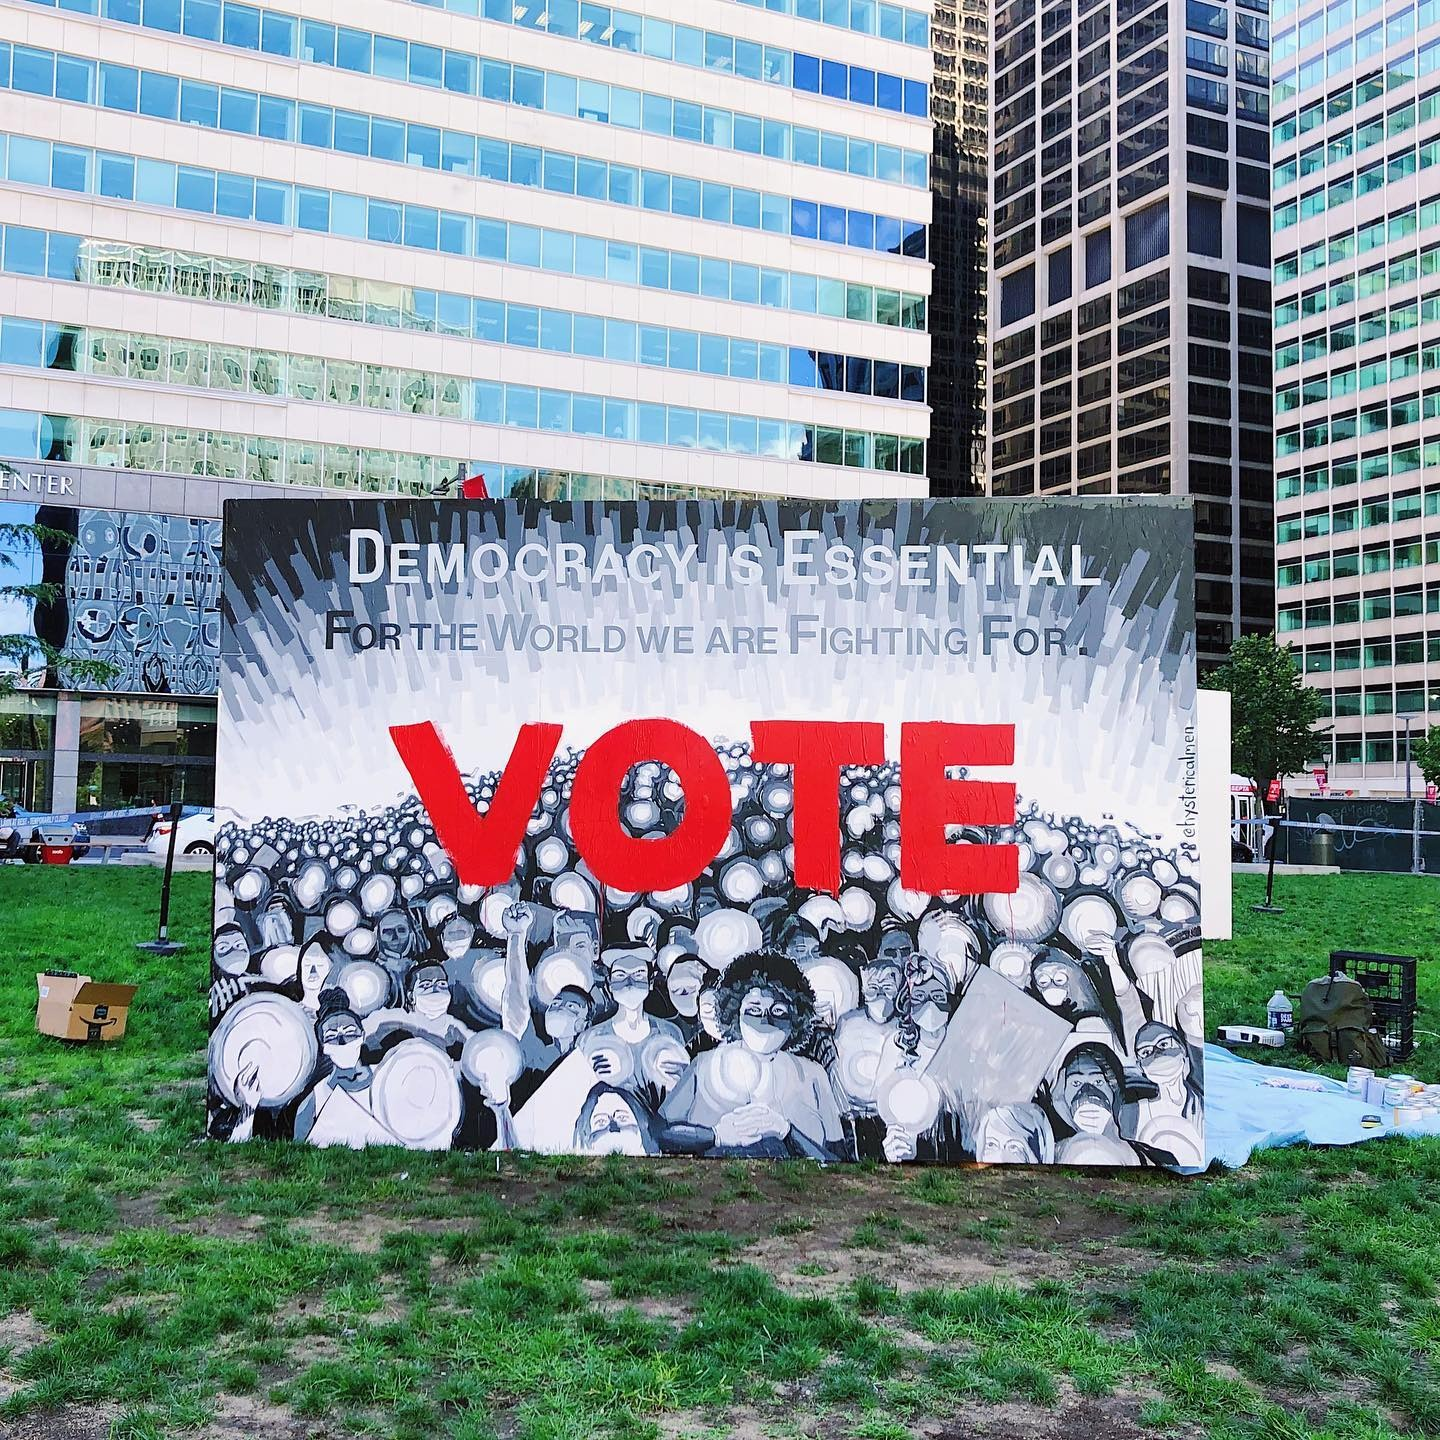 Register for our #ToThePolls2020 Artist Talk with WHYY - THURS 10/22, 5:30-6:30PM! (FREE)